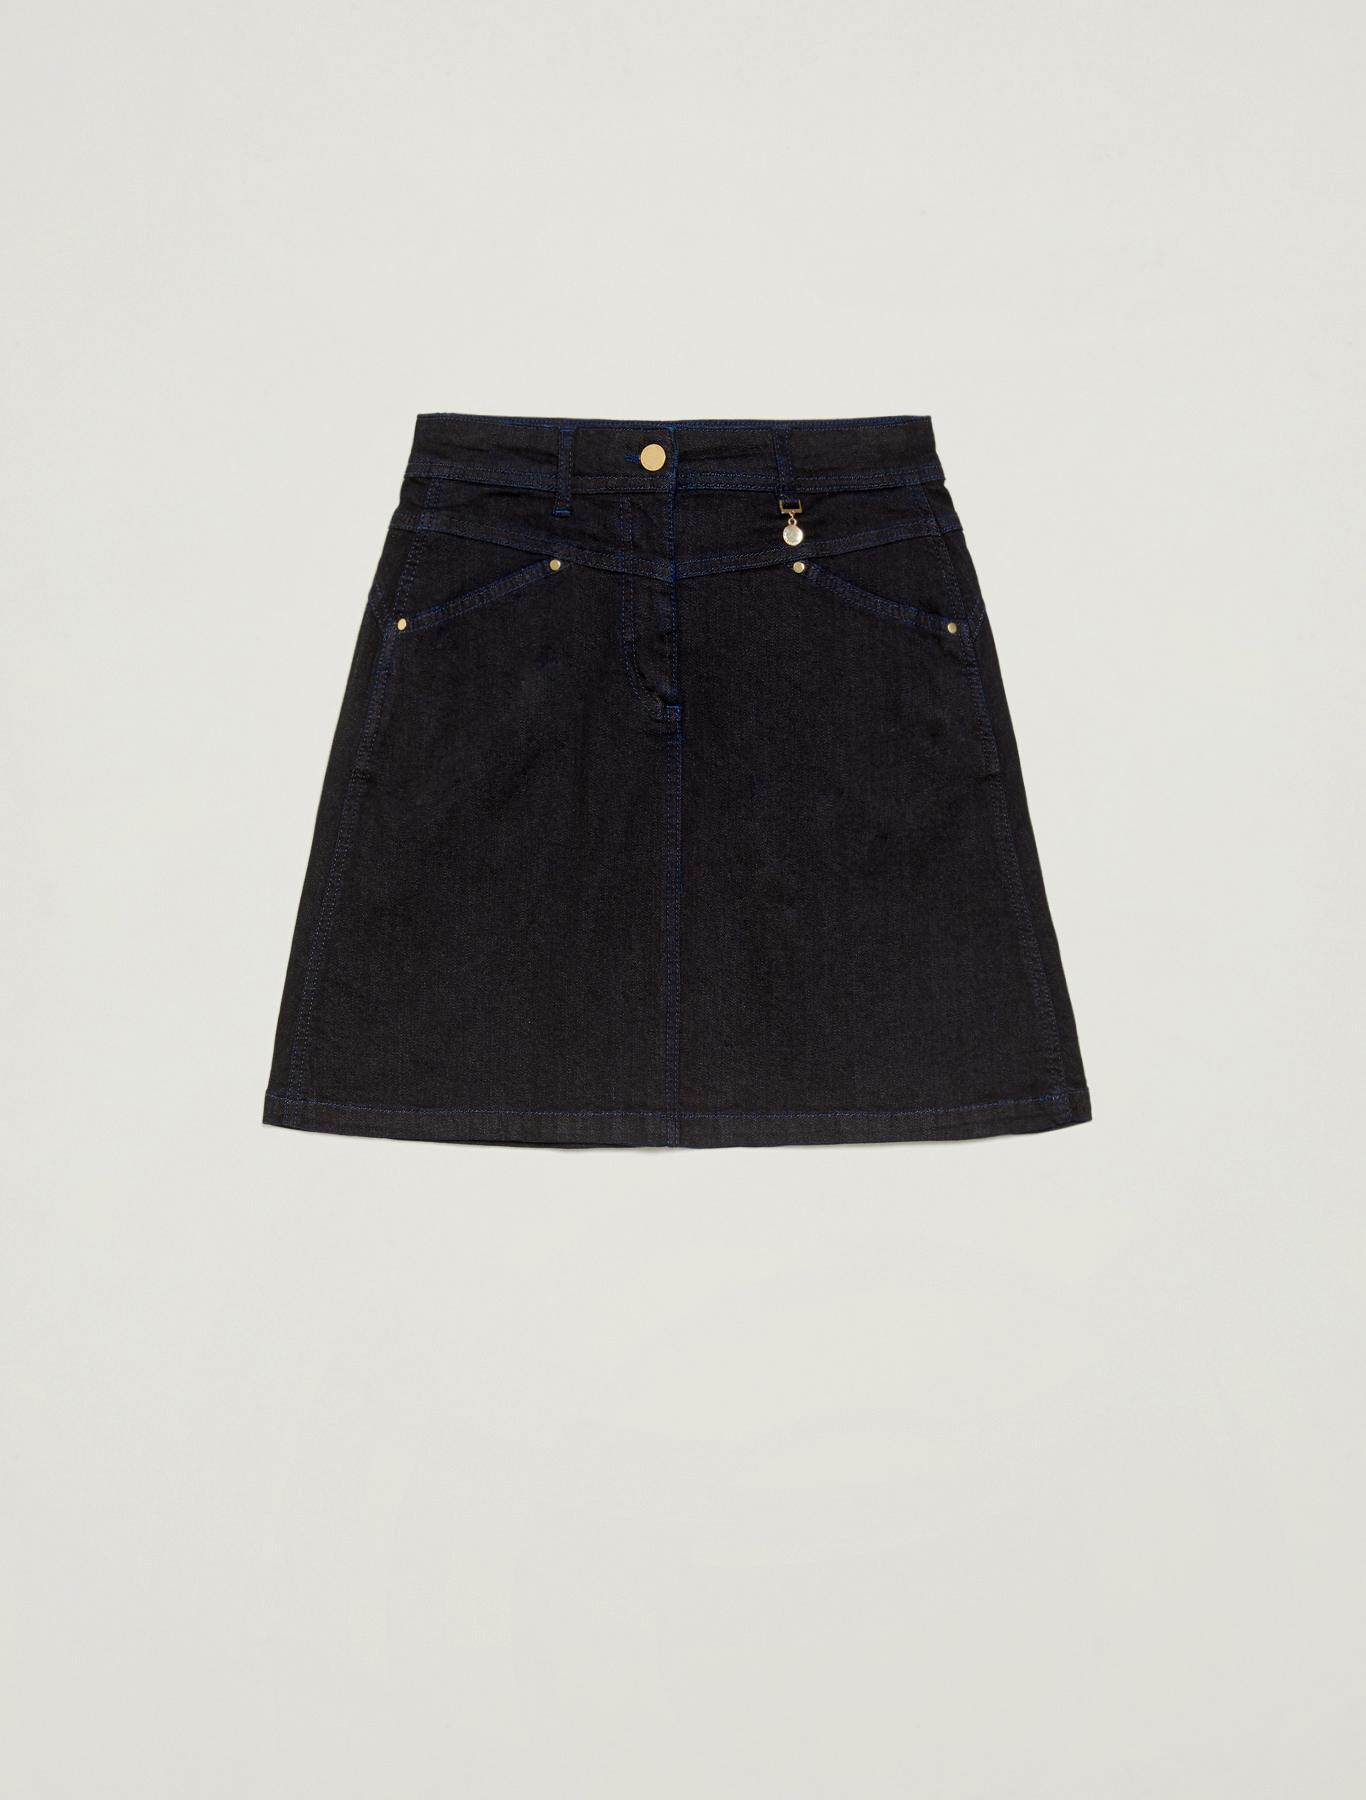 Blue denim A-line skirt - midnight blue - pennyblack